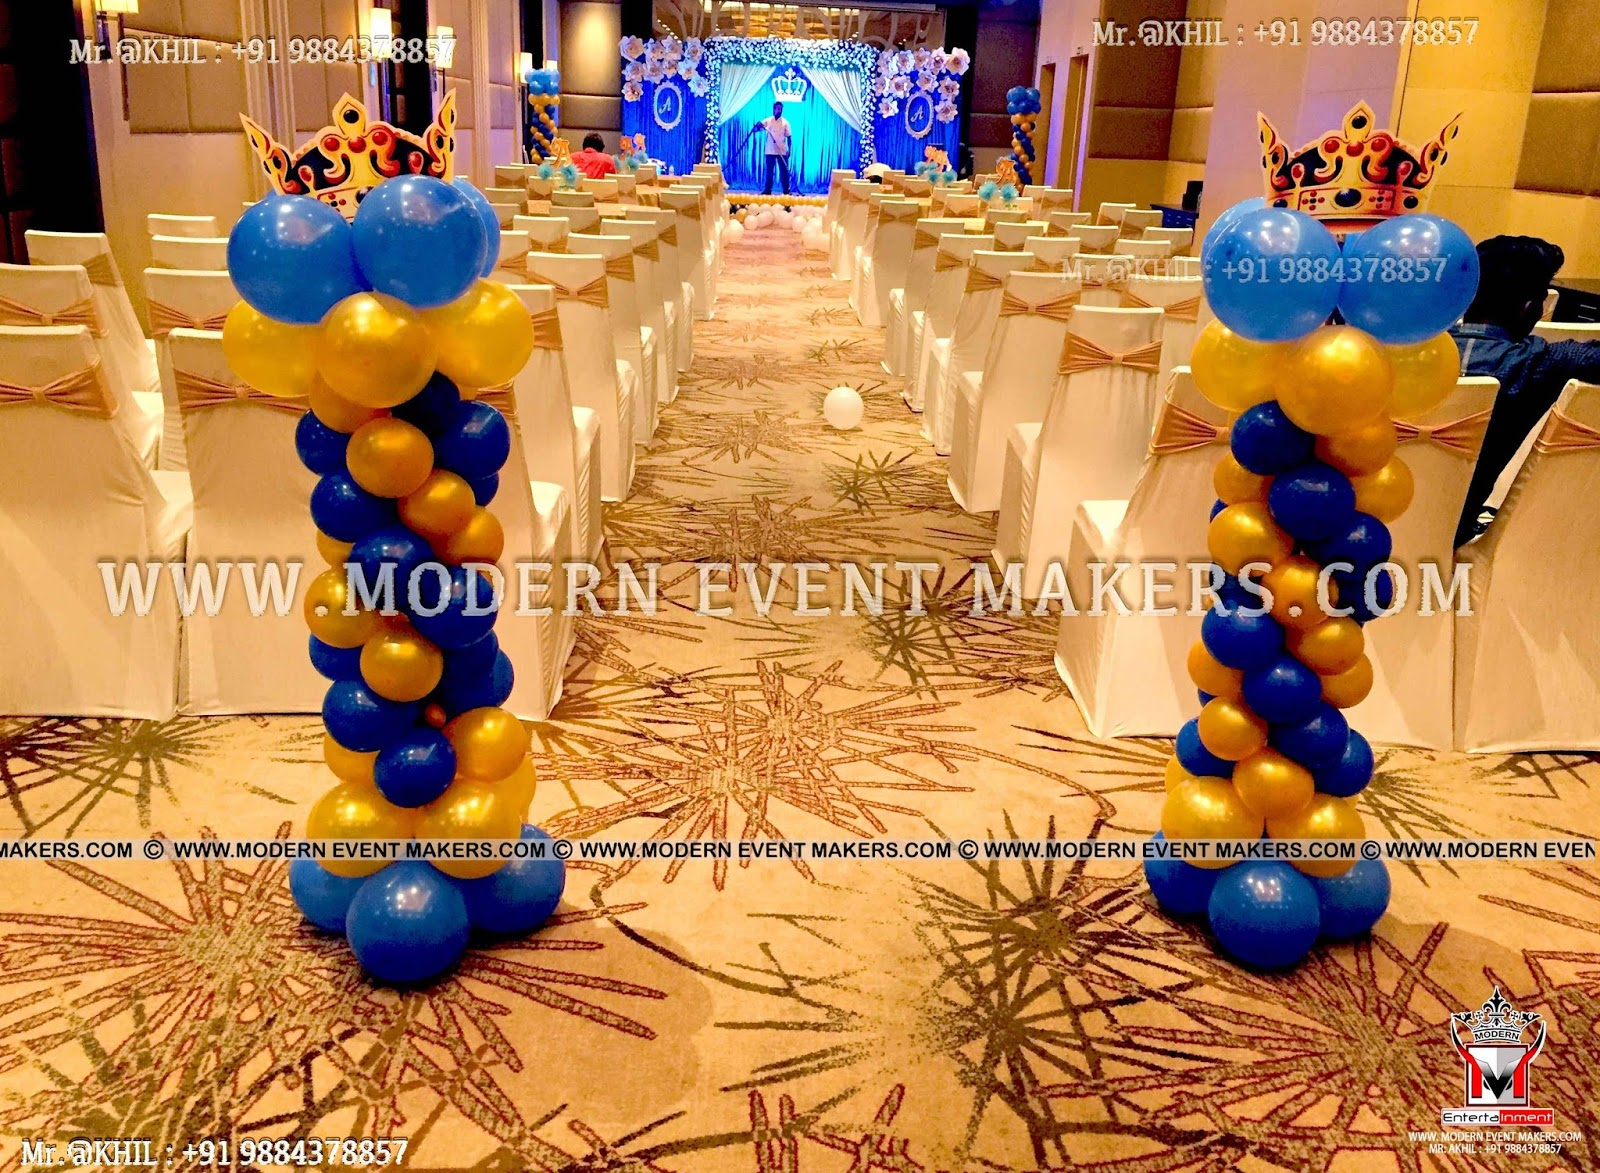 The best birthday party organiser in chennai 9884378857 for Balloon decoration in chennai